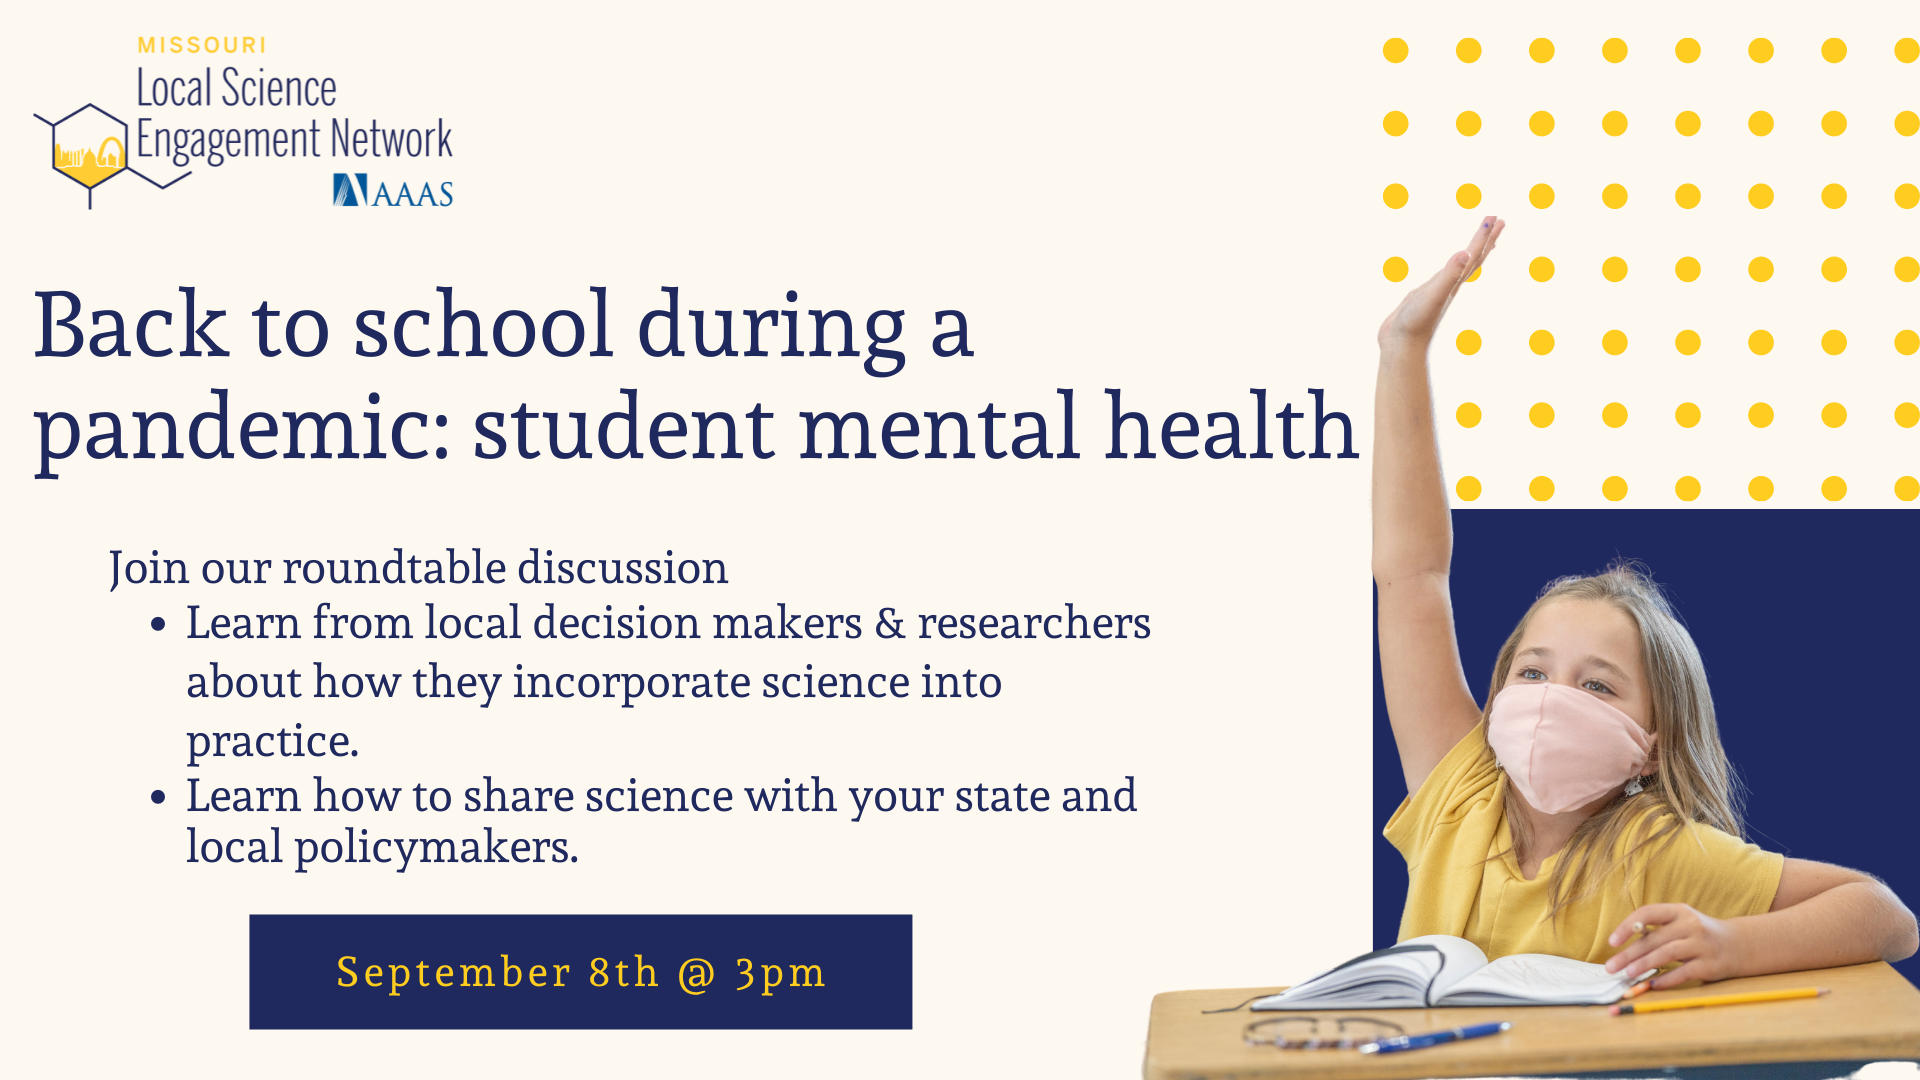 Back to school during a pandemic: Student Mental Health